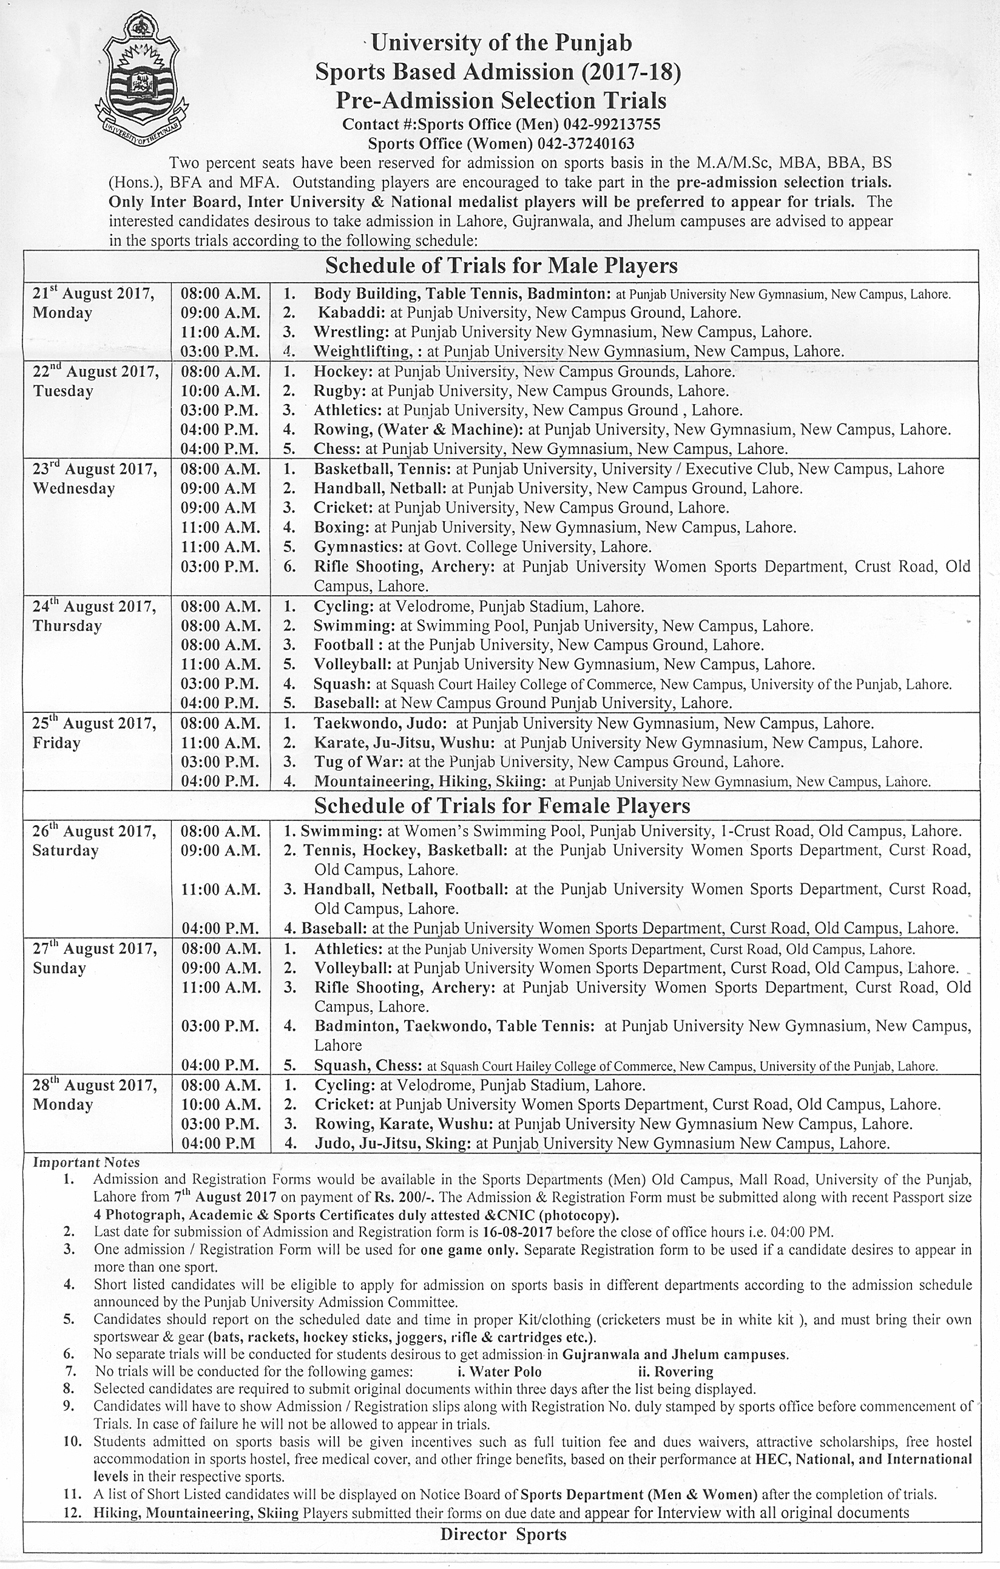 Sports Based Admission (2017-18) - Pre-Admission Selection Trials